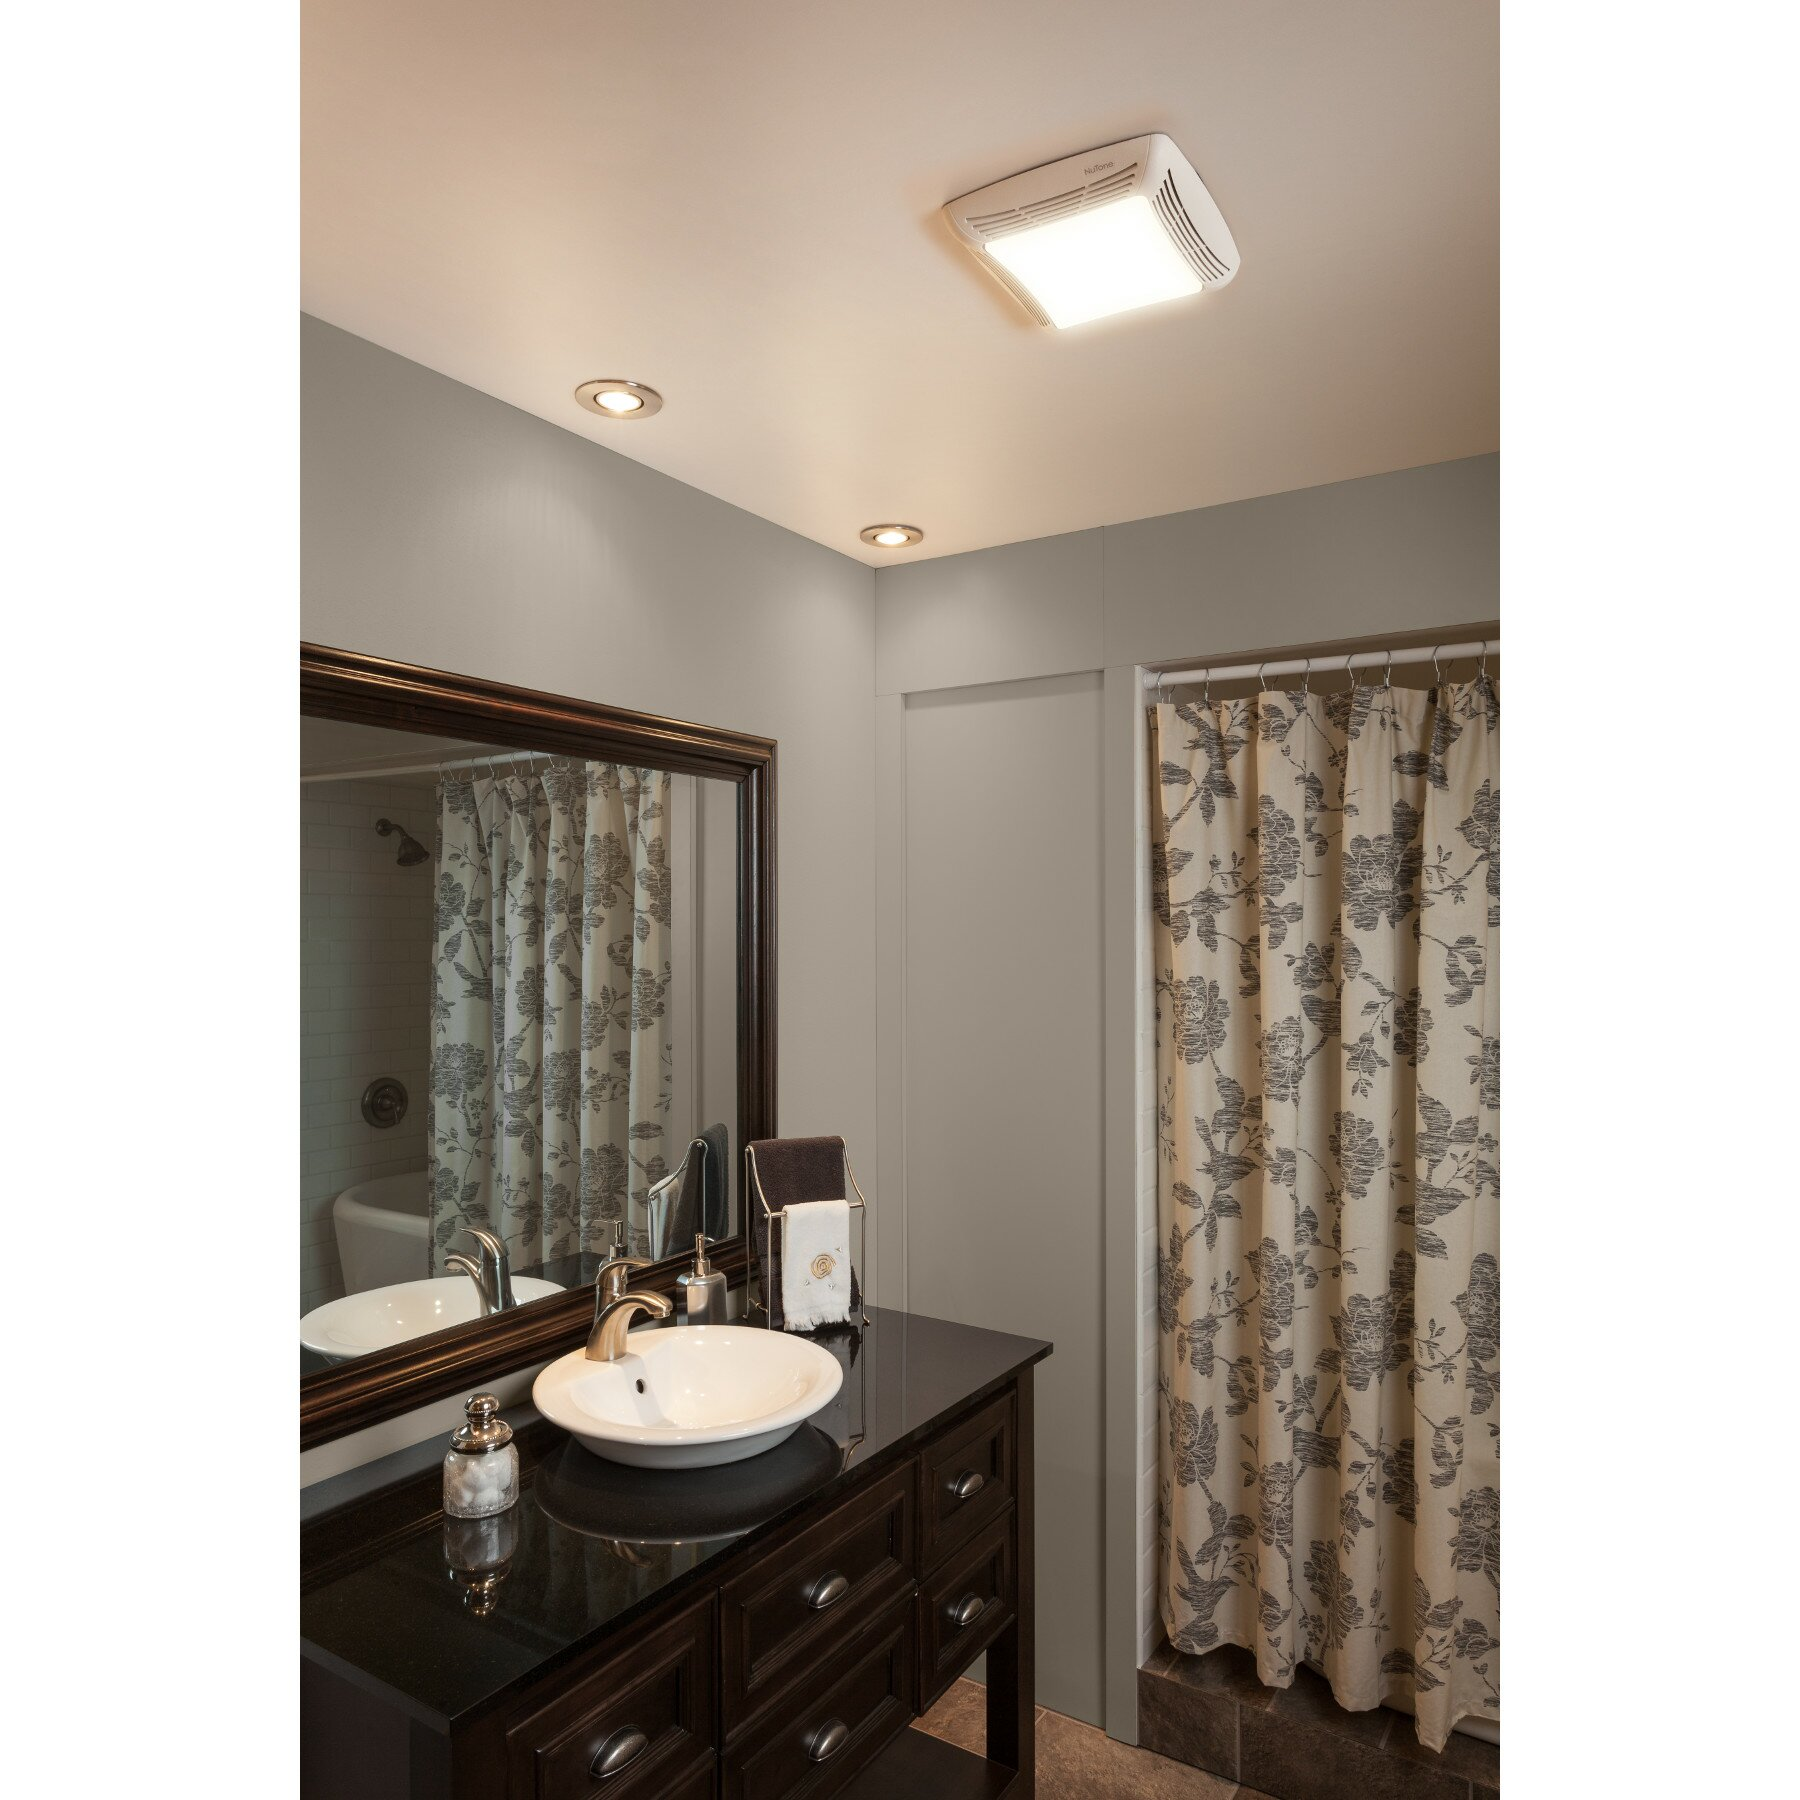 Broan ceiling mount 70 cfm exhaust bathroom fan with light reviews for Best bathroom fan light reviews